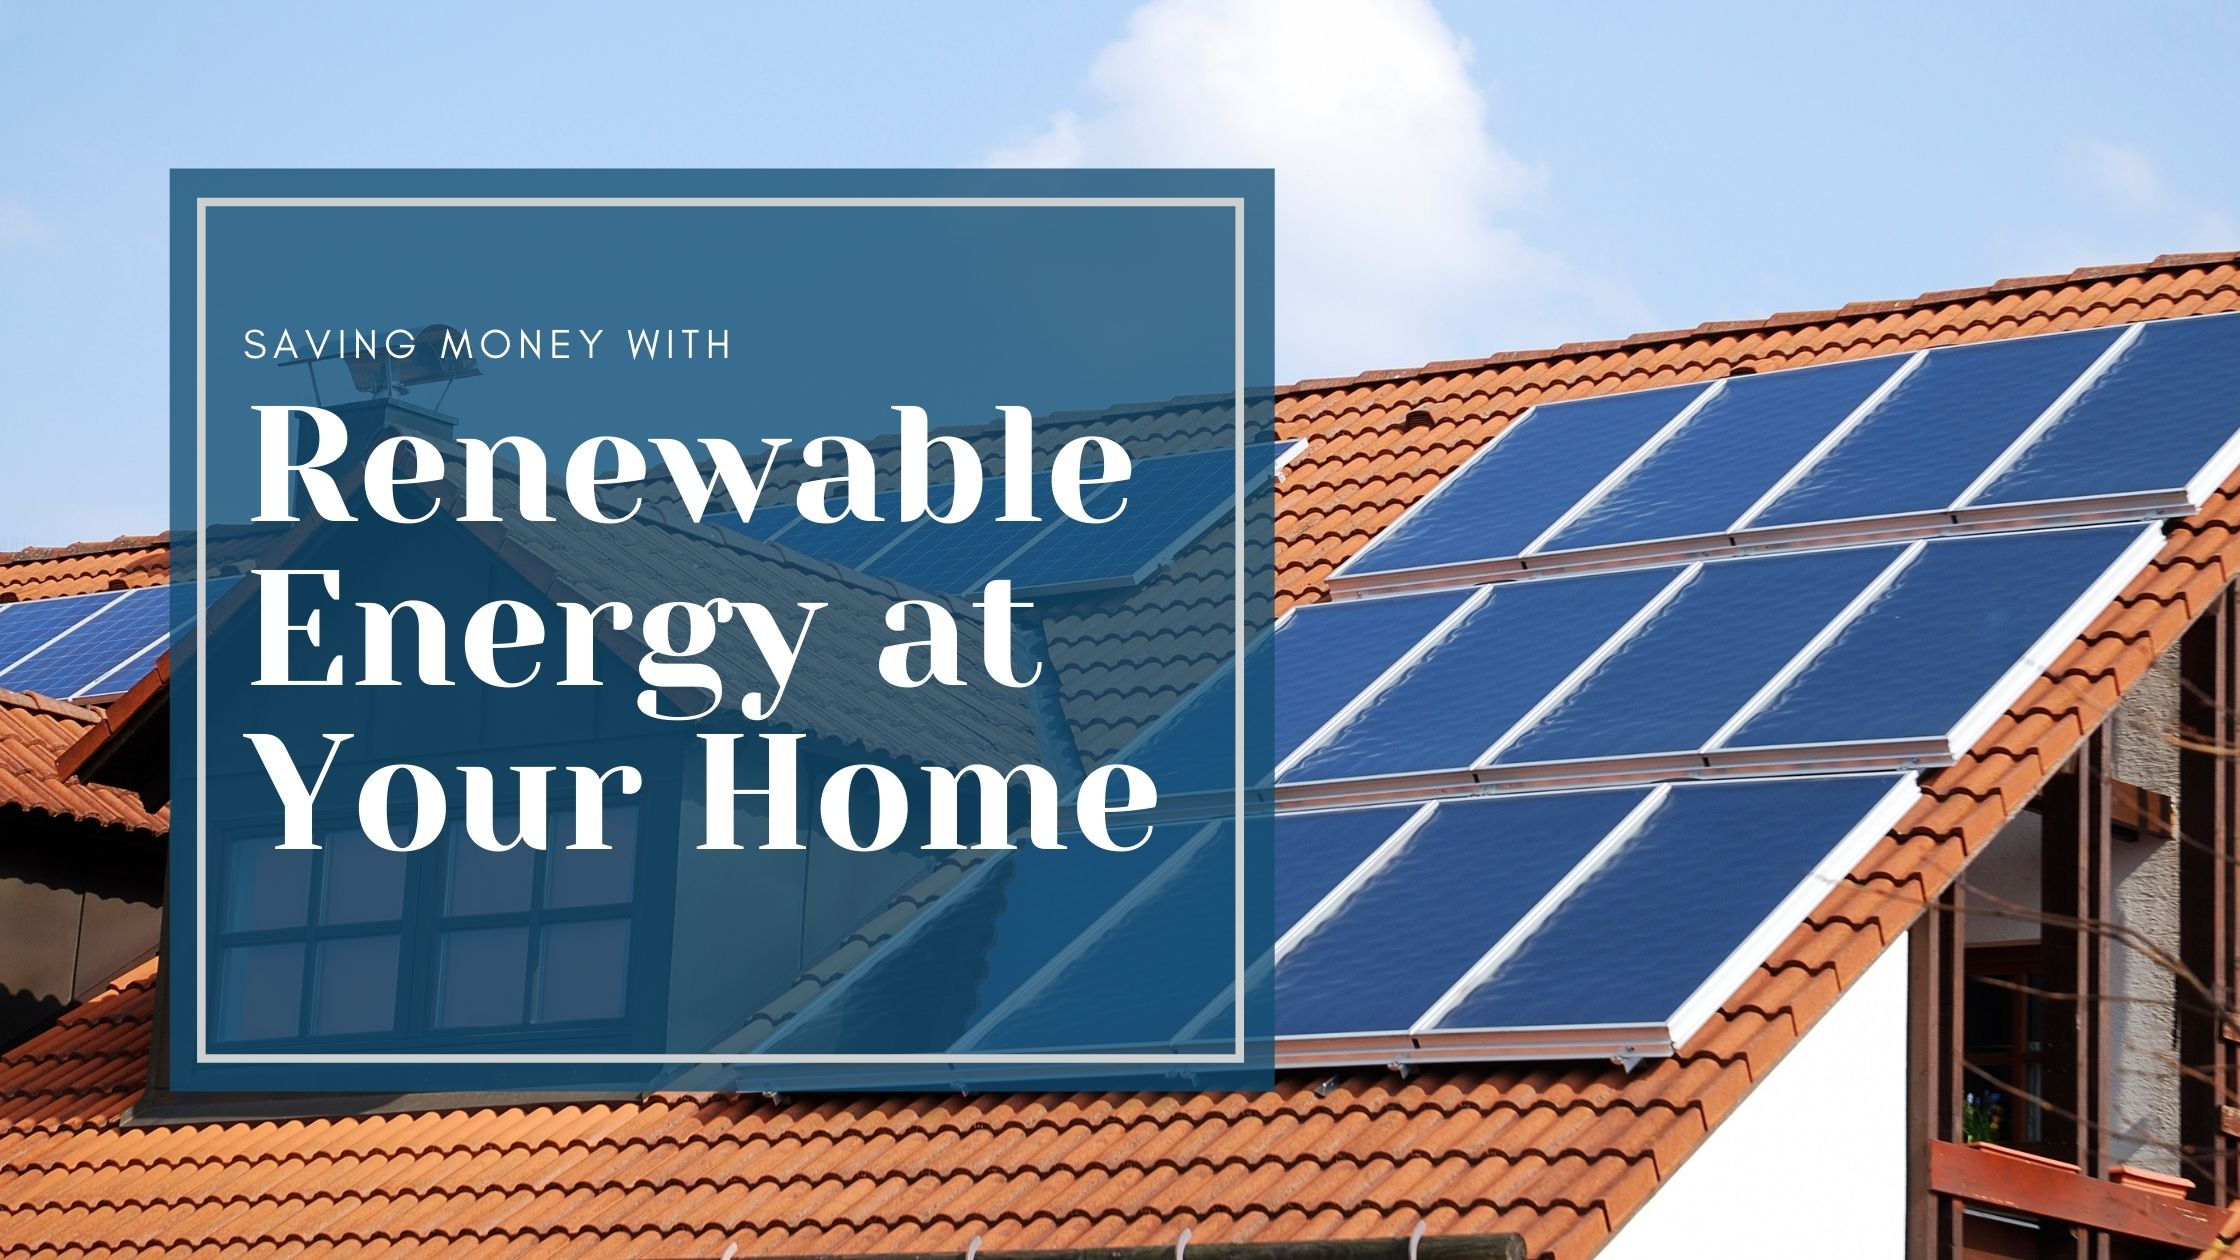 Renewable Energy at Your Home